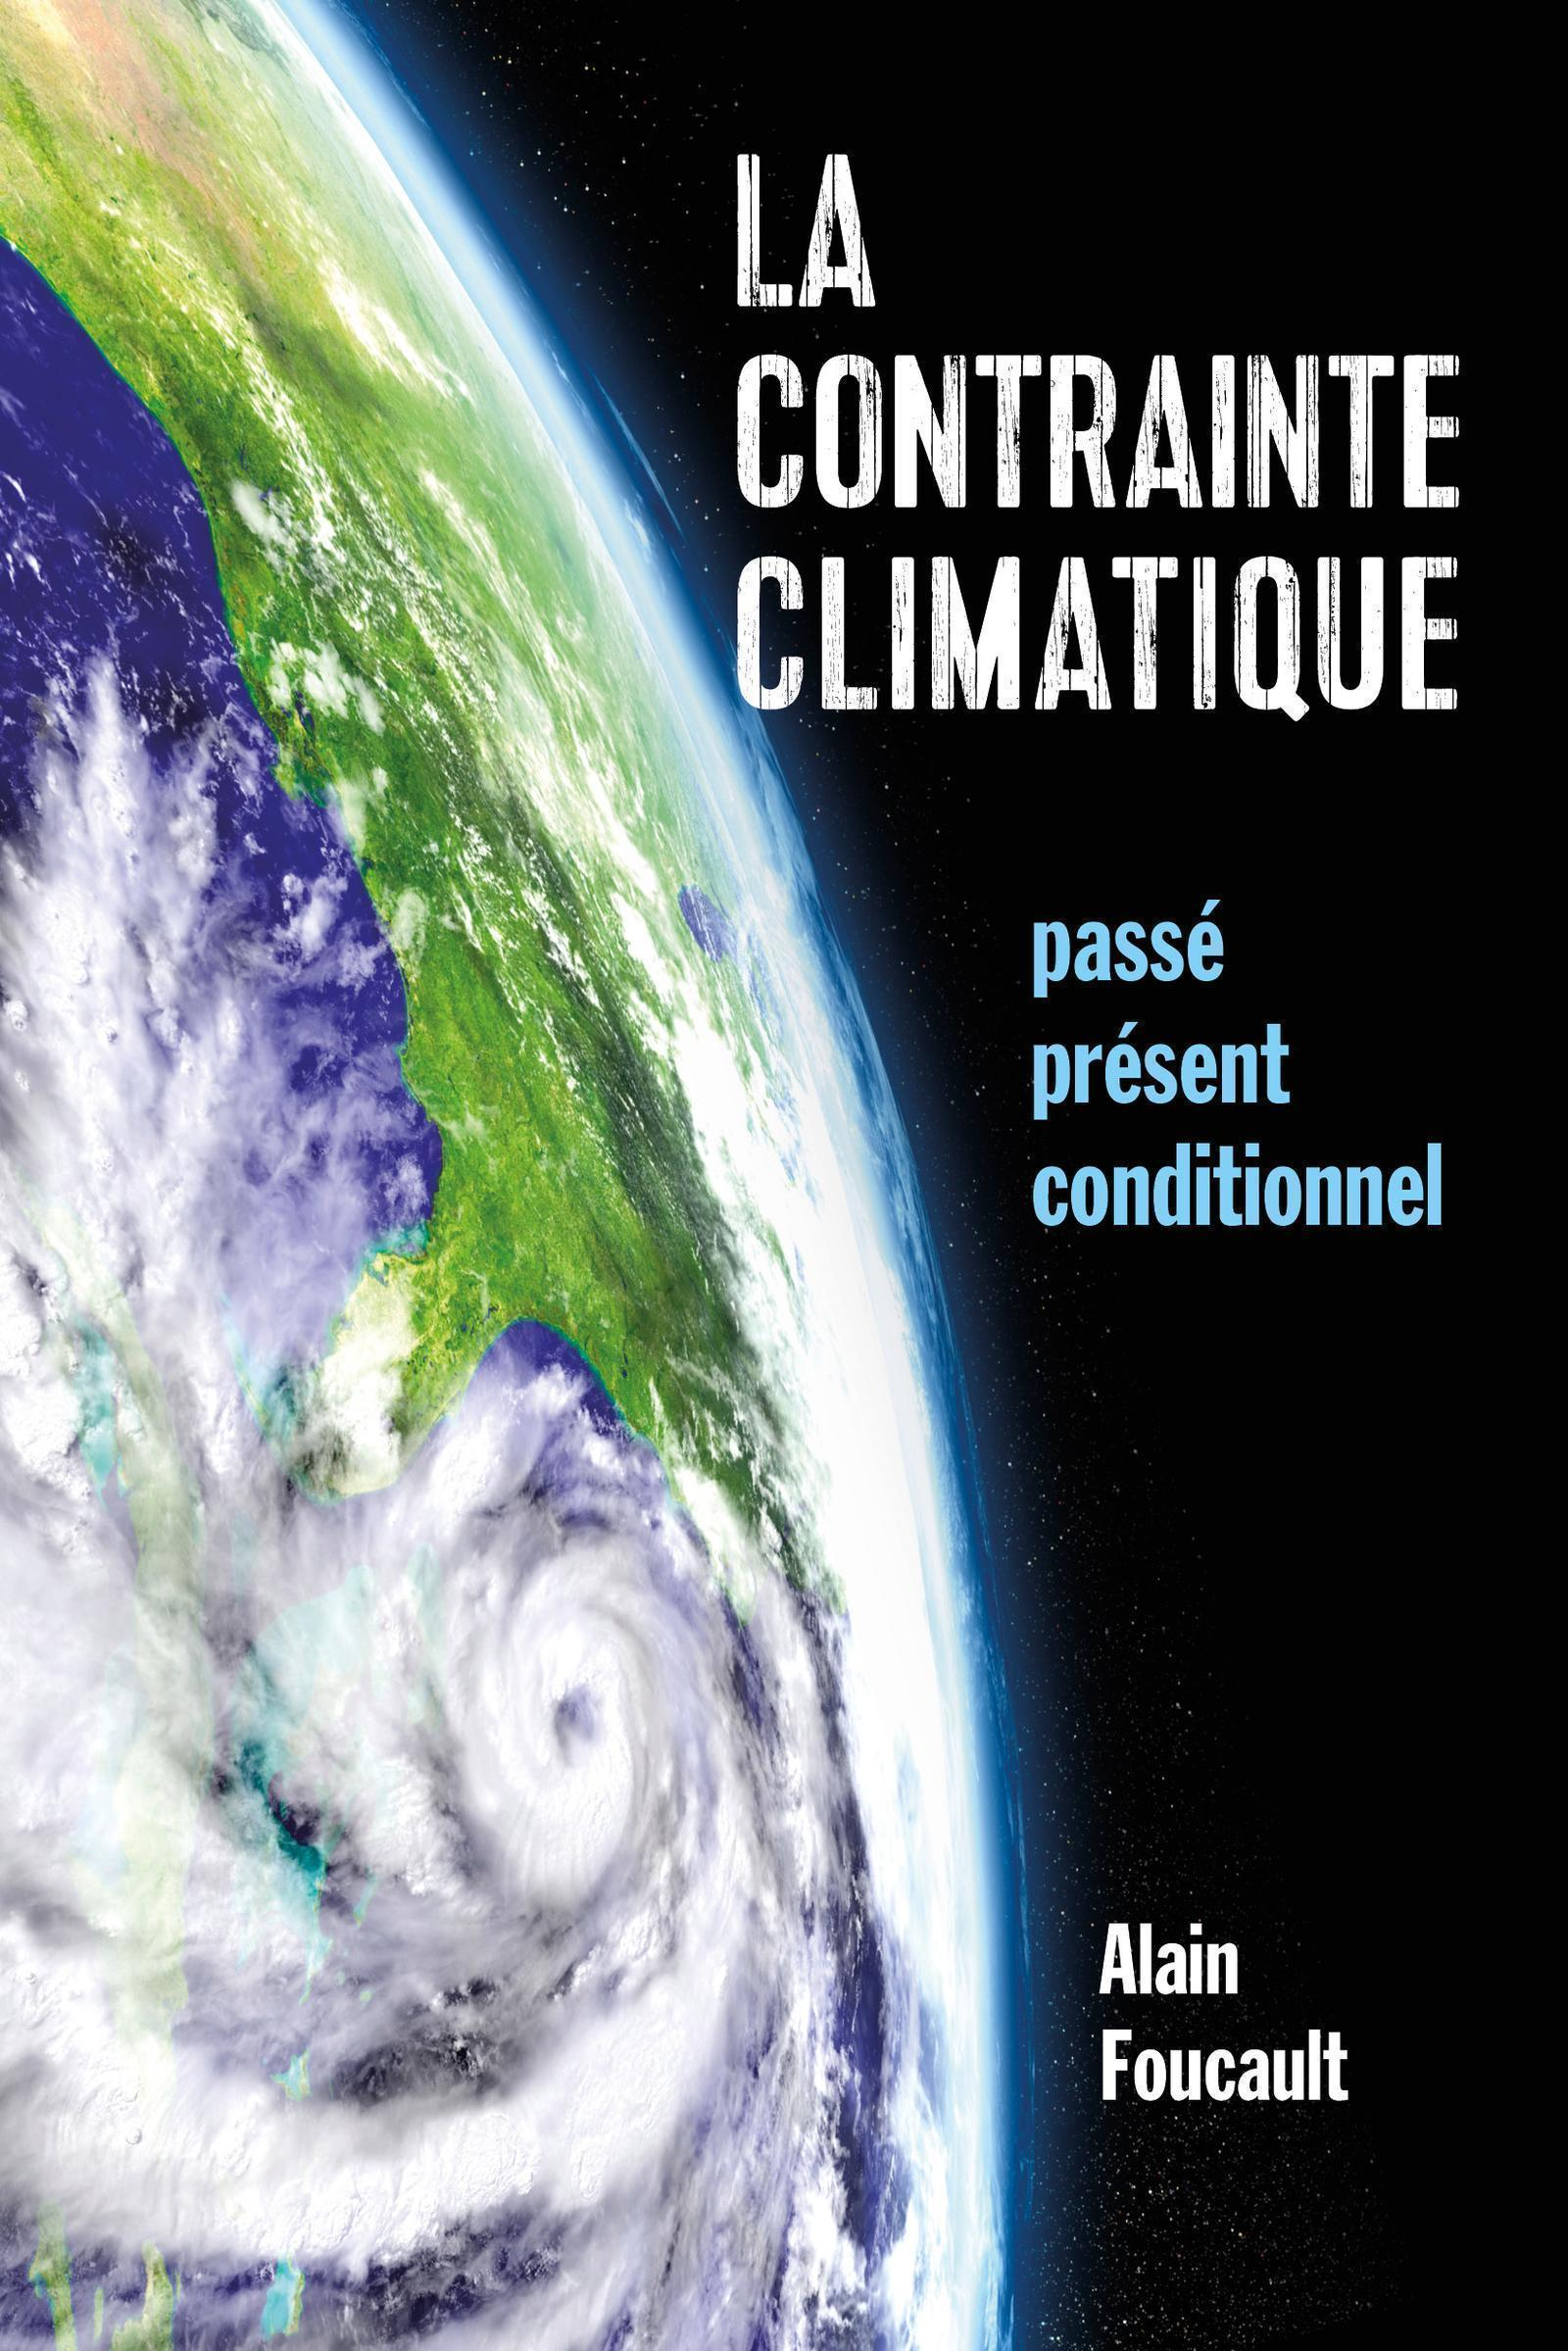 LA CONTRAINTE CLIMATIQUE - PASSE, PRESENT, CONDITIONNEL